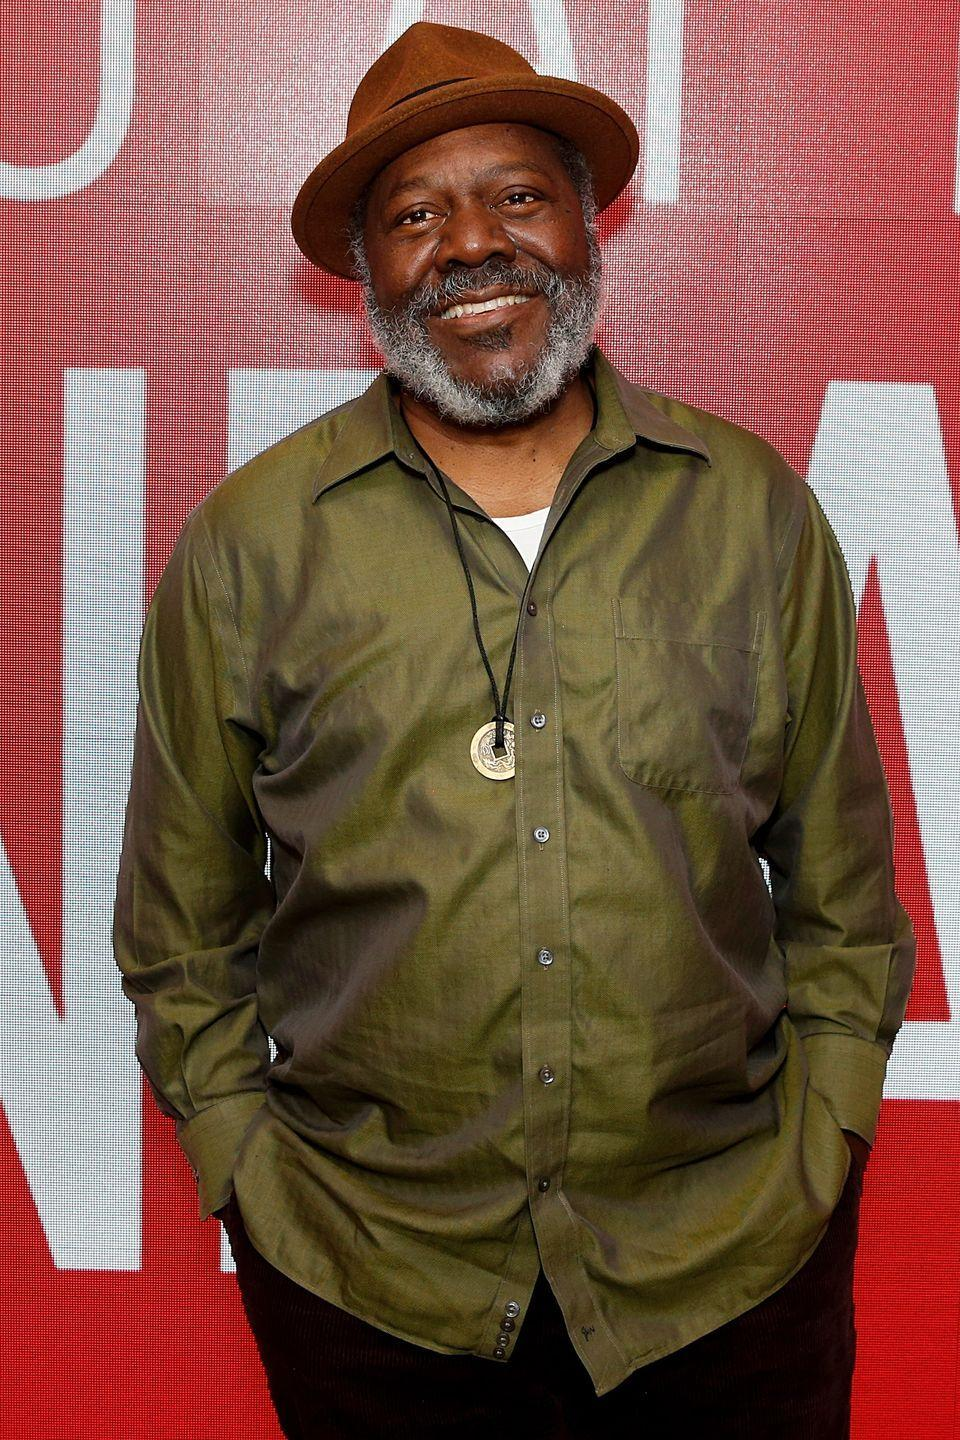 <p>Since <em>The Wire</em>, Faison has kept himself plenty busy. He's appeared on <em>Blue Bloods</em> and had a recurring role in Cinemax's <em>Banshee</em> franchise, as well as on <em>One Life to Live,</em> <em>The Good Wife,</em> and its spinoff, <em>The Good Fight</em>. He'll also appear in <em>The Grudge</em> reboot.</p>